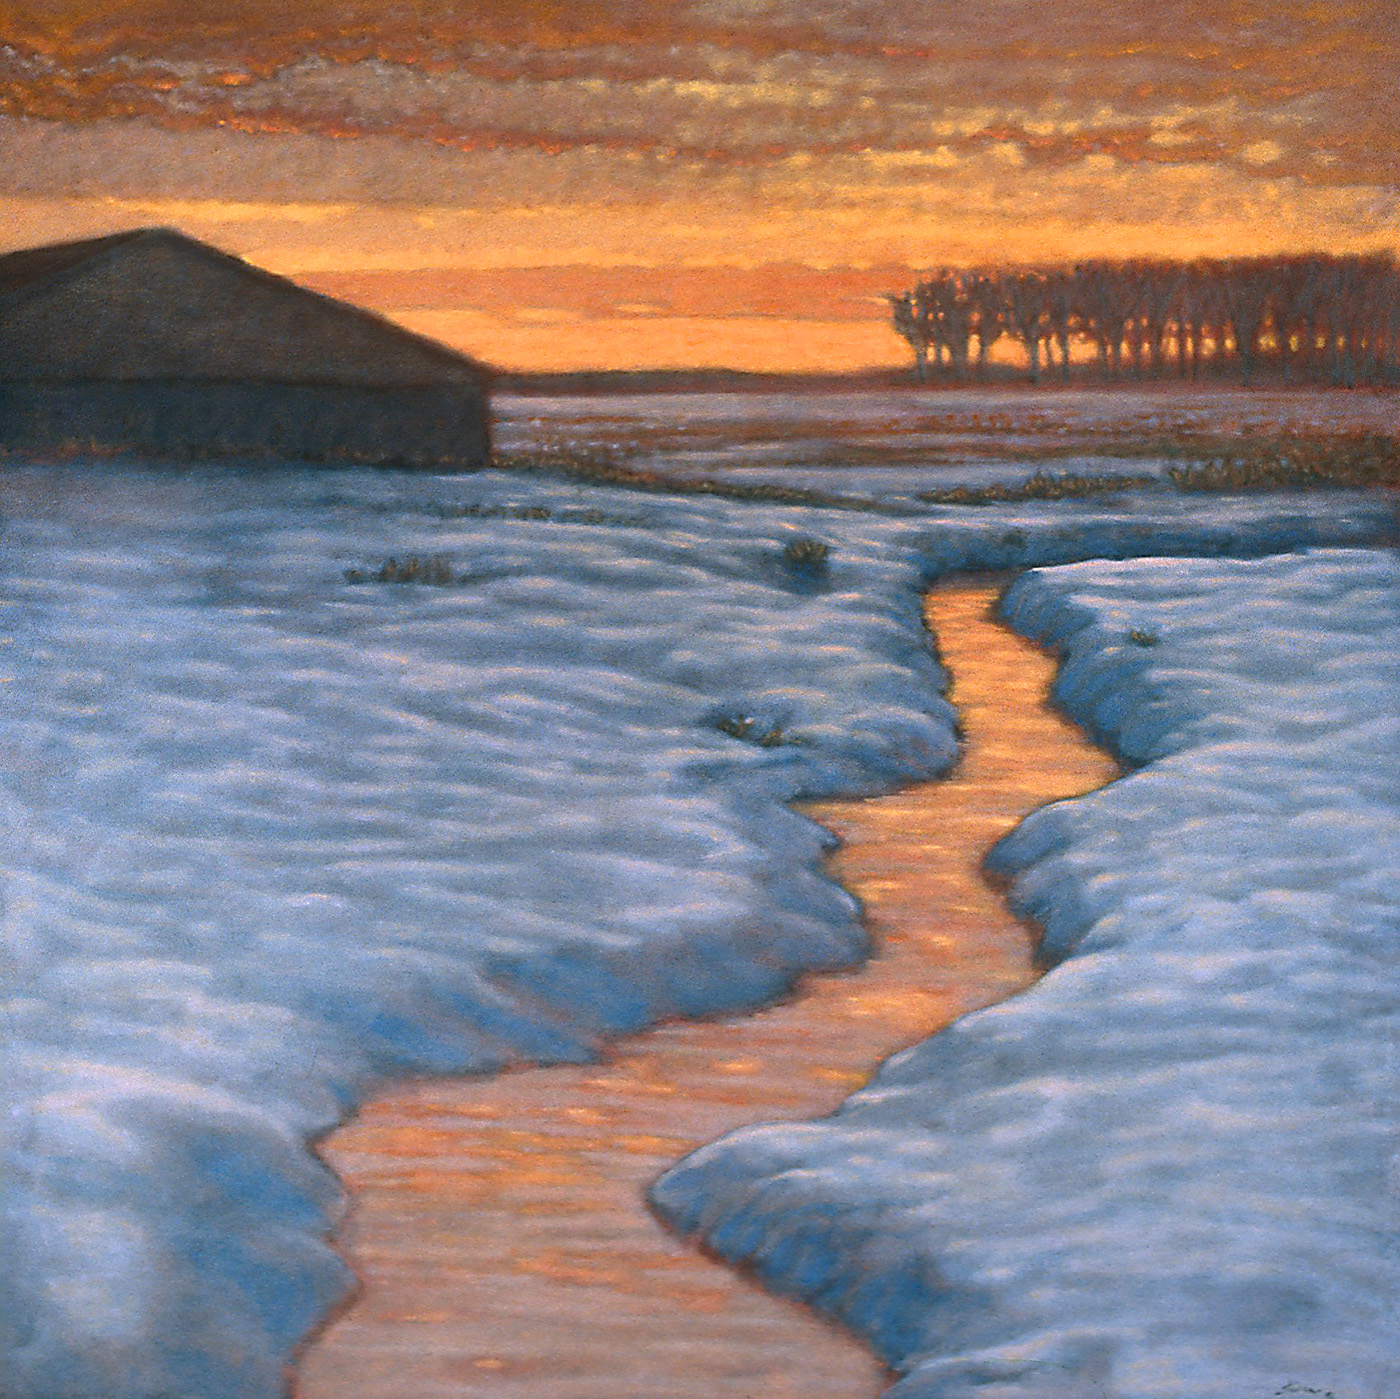 Winter Stream With Barn   | oil on canvas | 48 x 48"